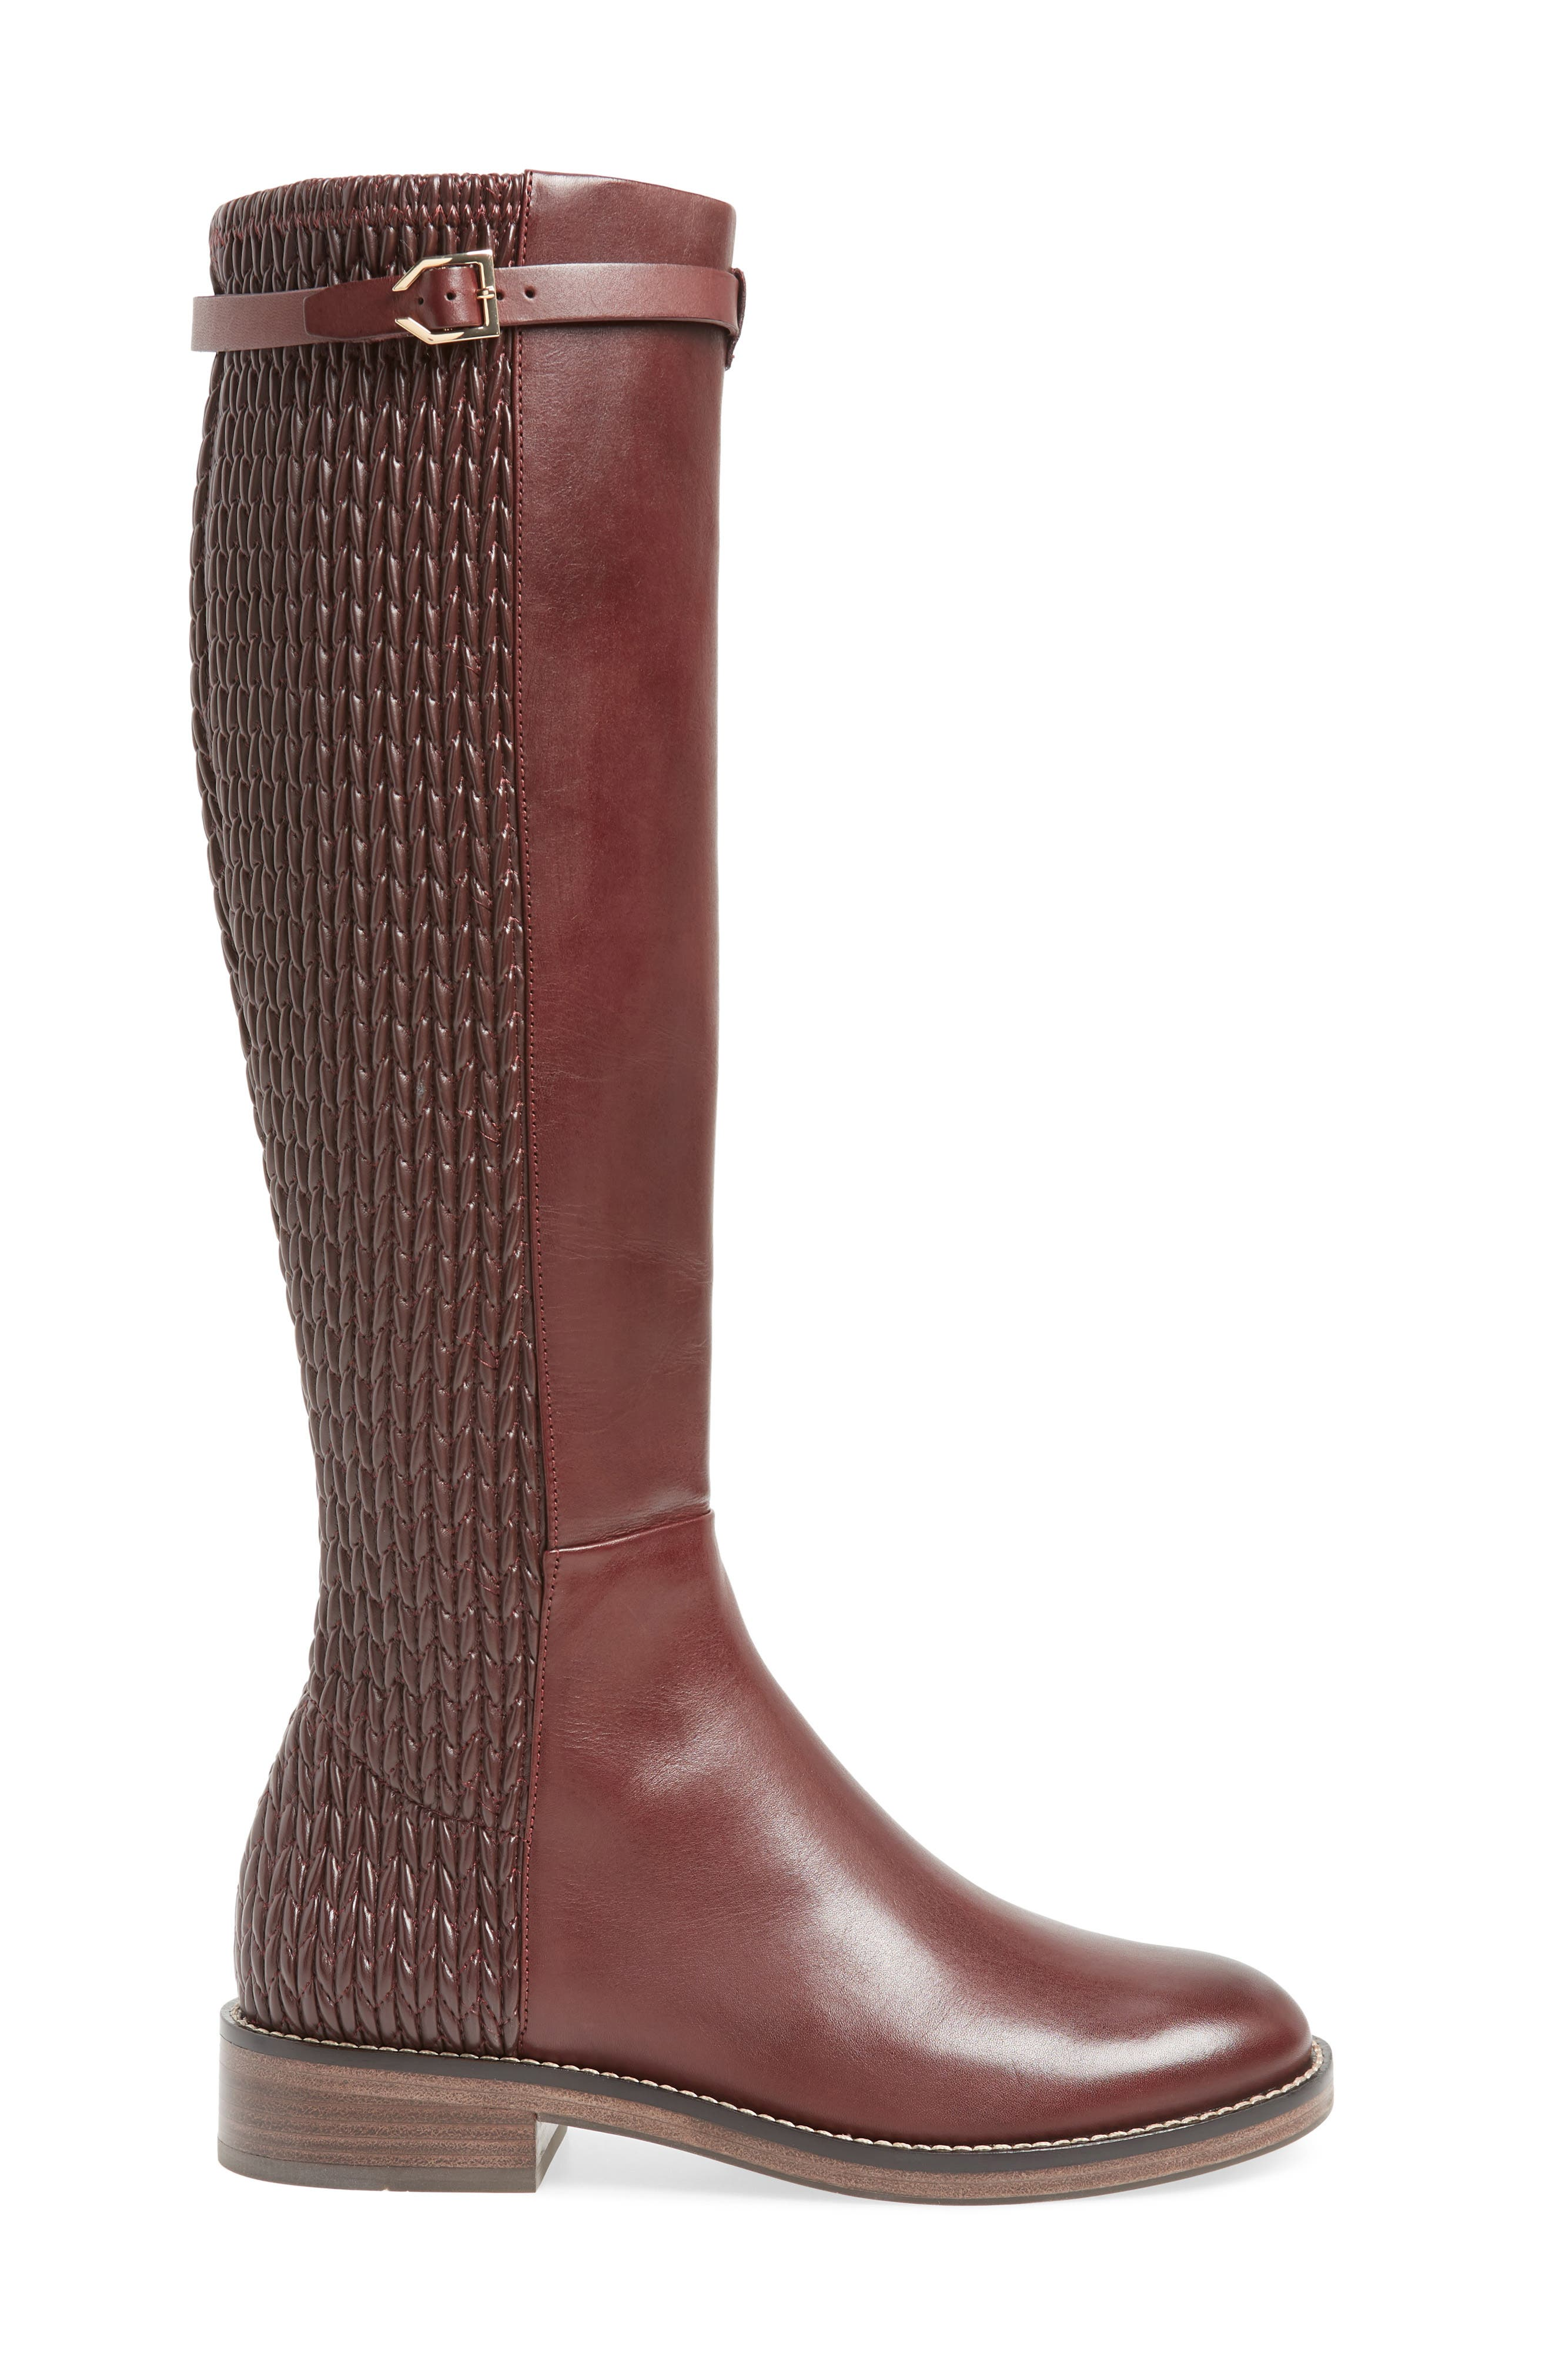 Lexi Grand Knee High Stretch Boot,                             Alternate thumbnail 3, color,                             CORDOVAN LEATHER